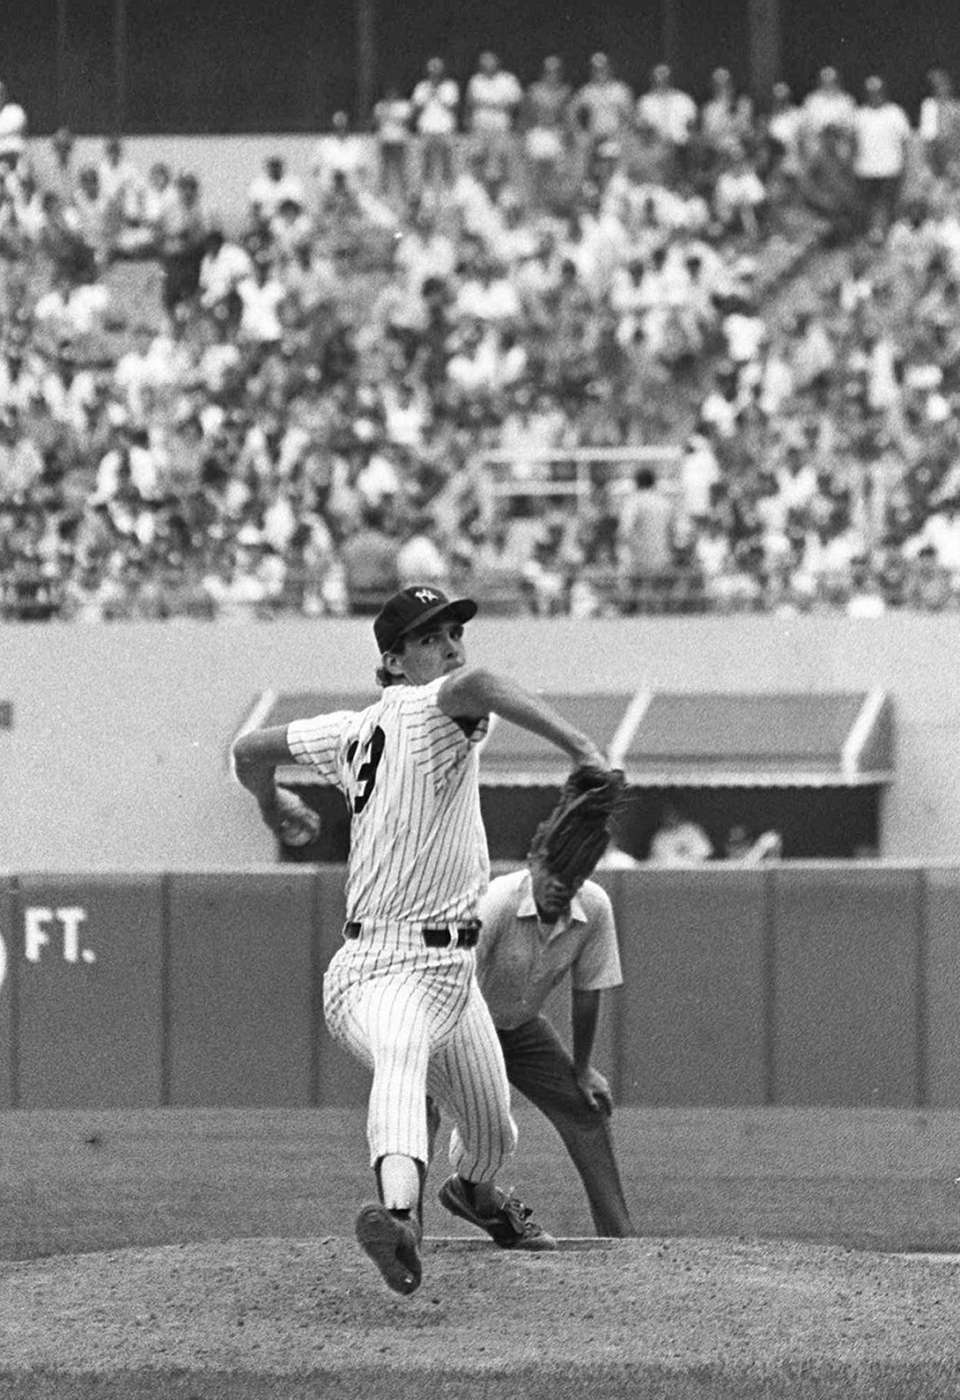 Yankees lefthander Dave Righetti pitches the ninth inning